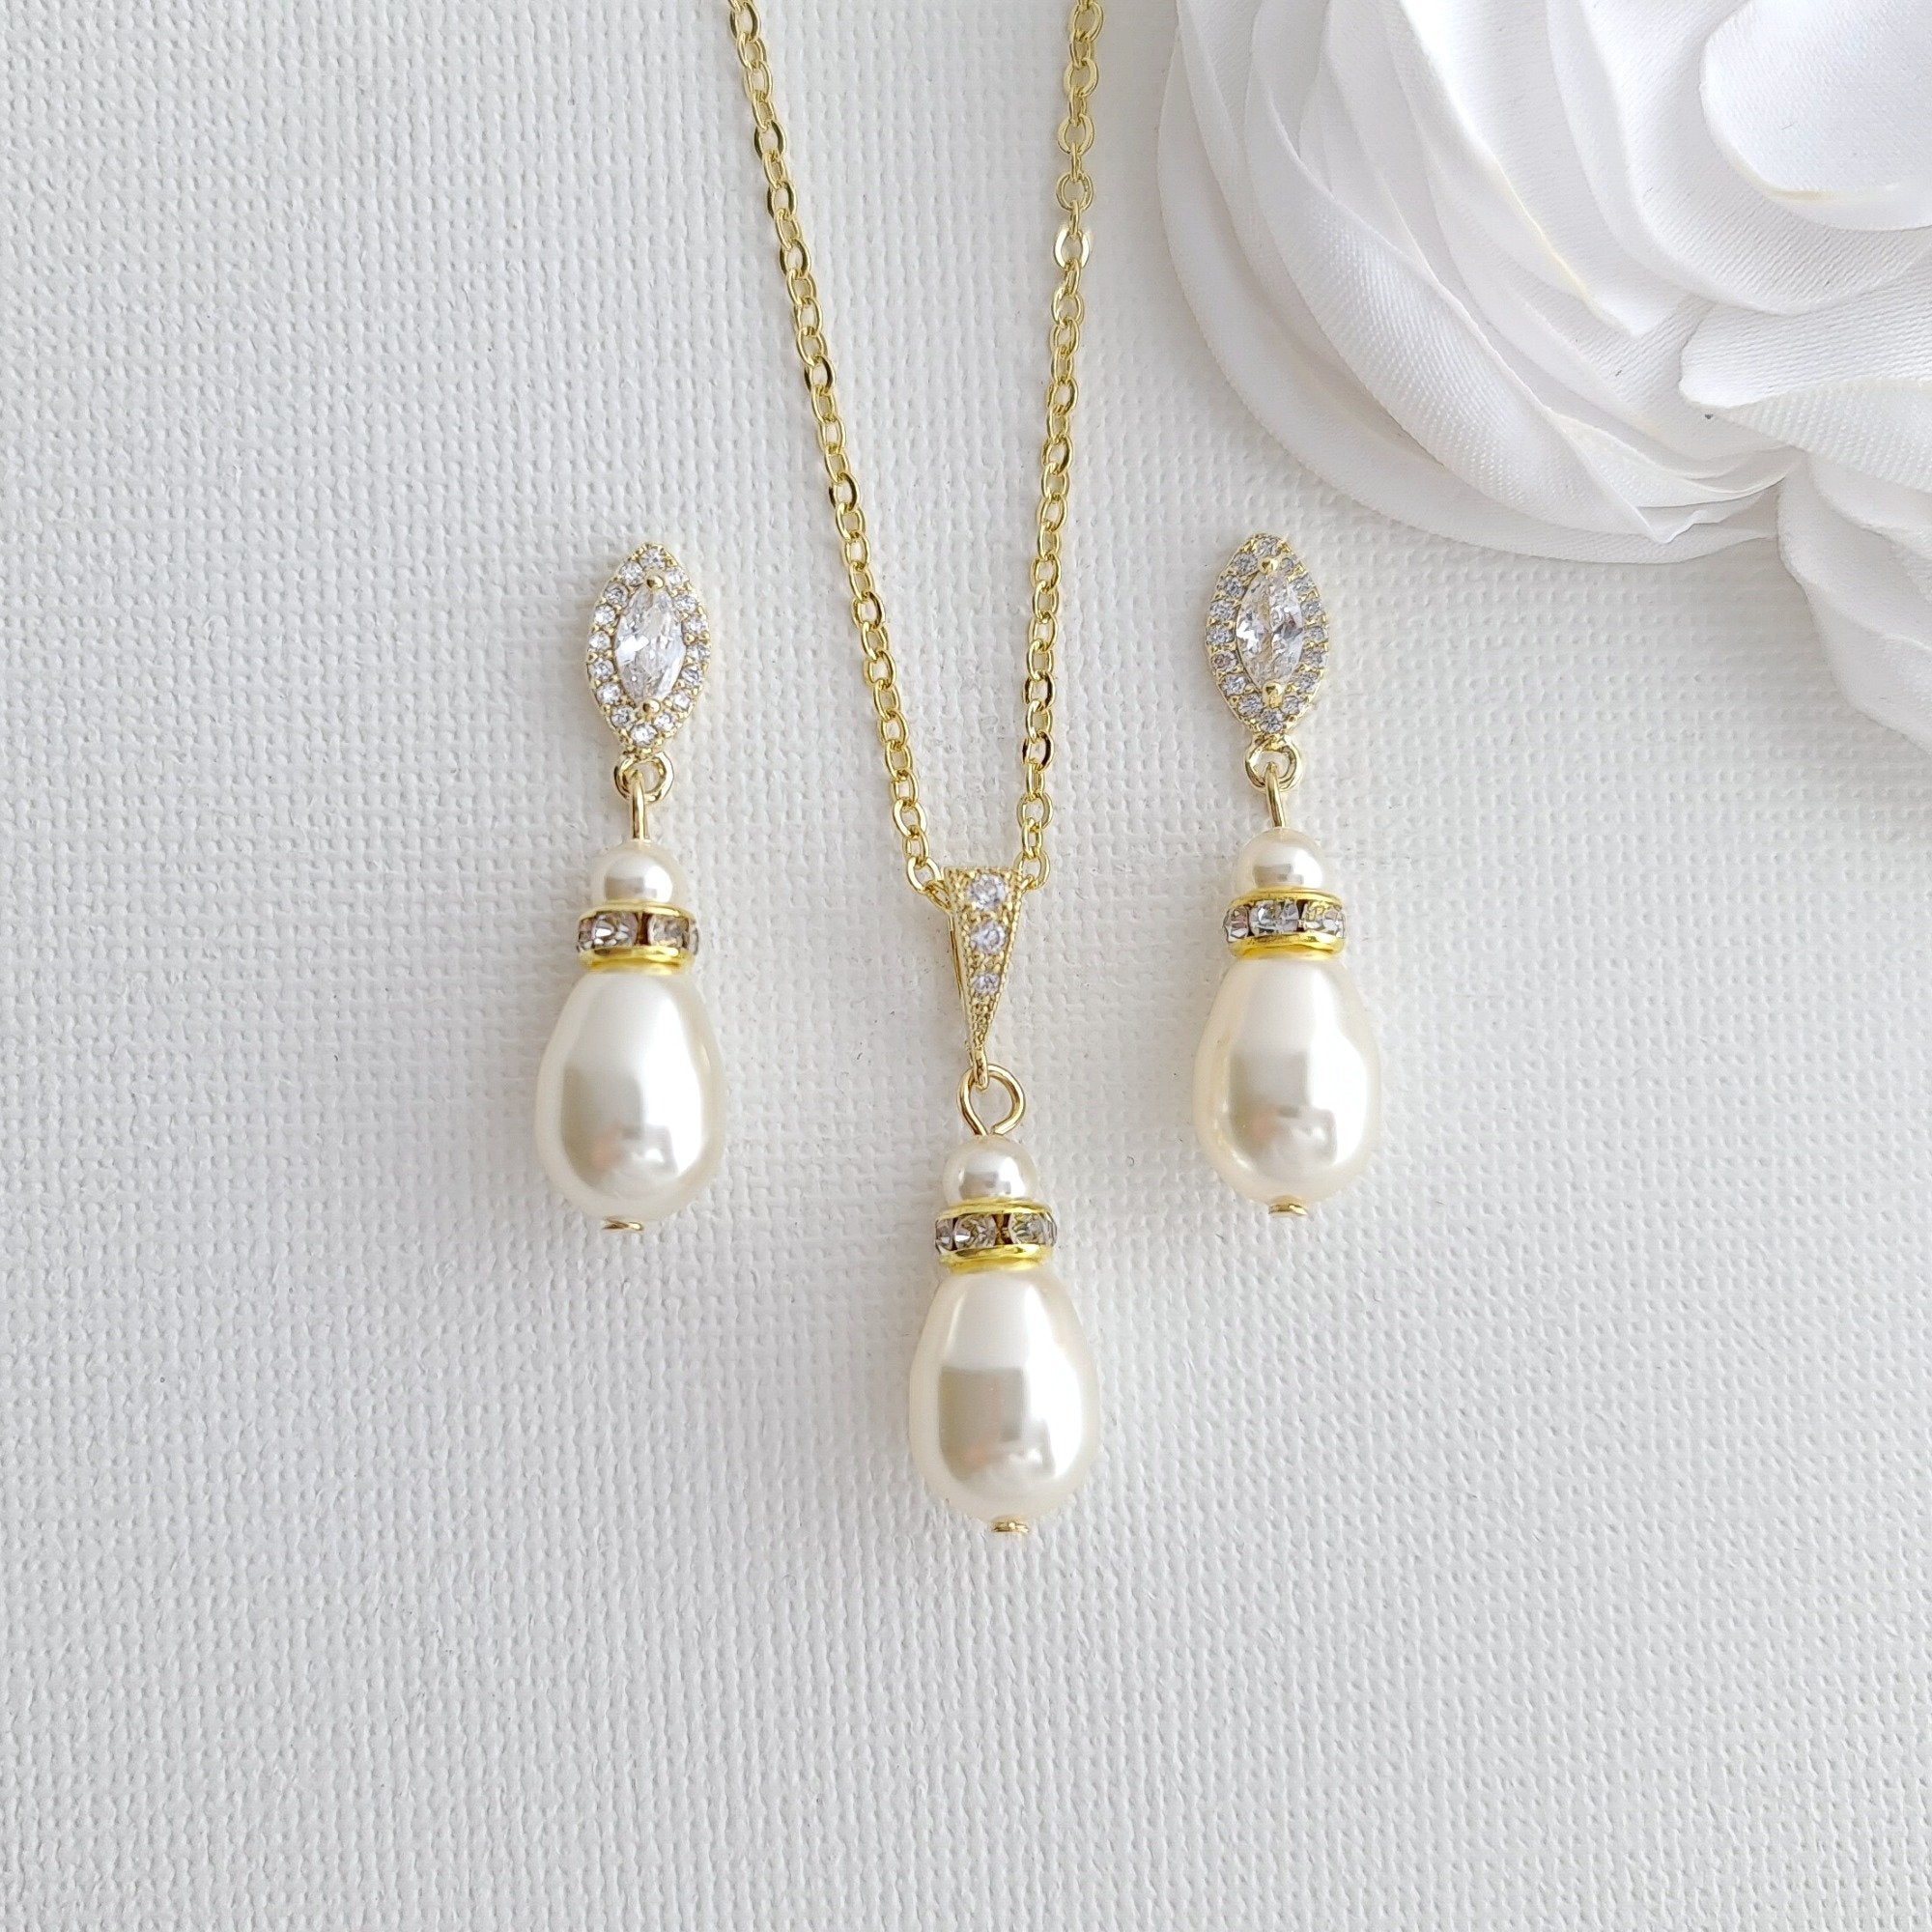 Affordable Pearl Bridesmaid Jewelry Set in Silver Gold Rose Gold Tones- Ella - PoetryDesigns